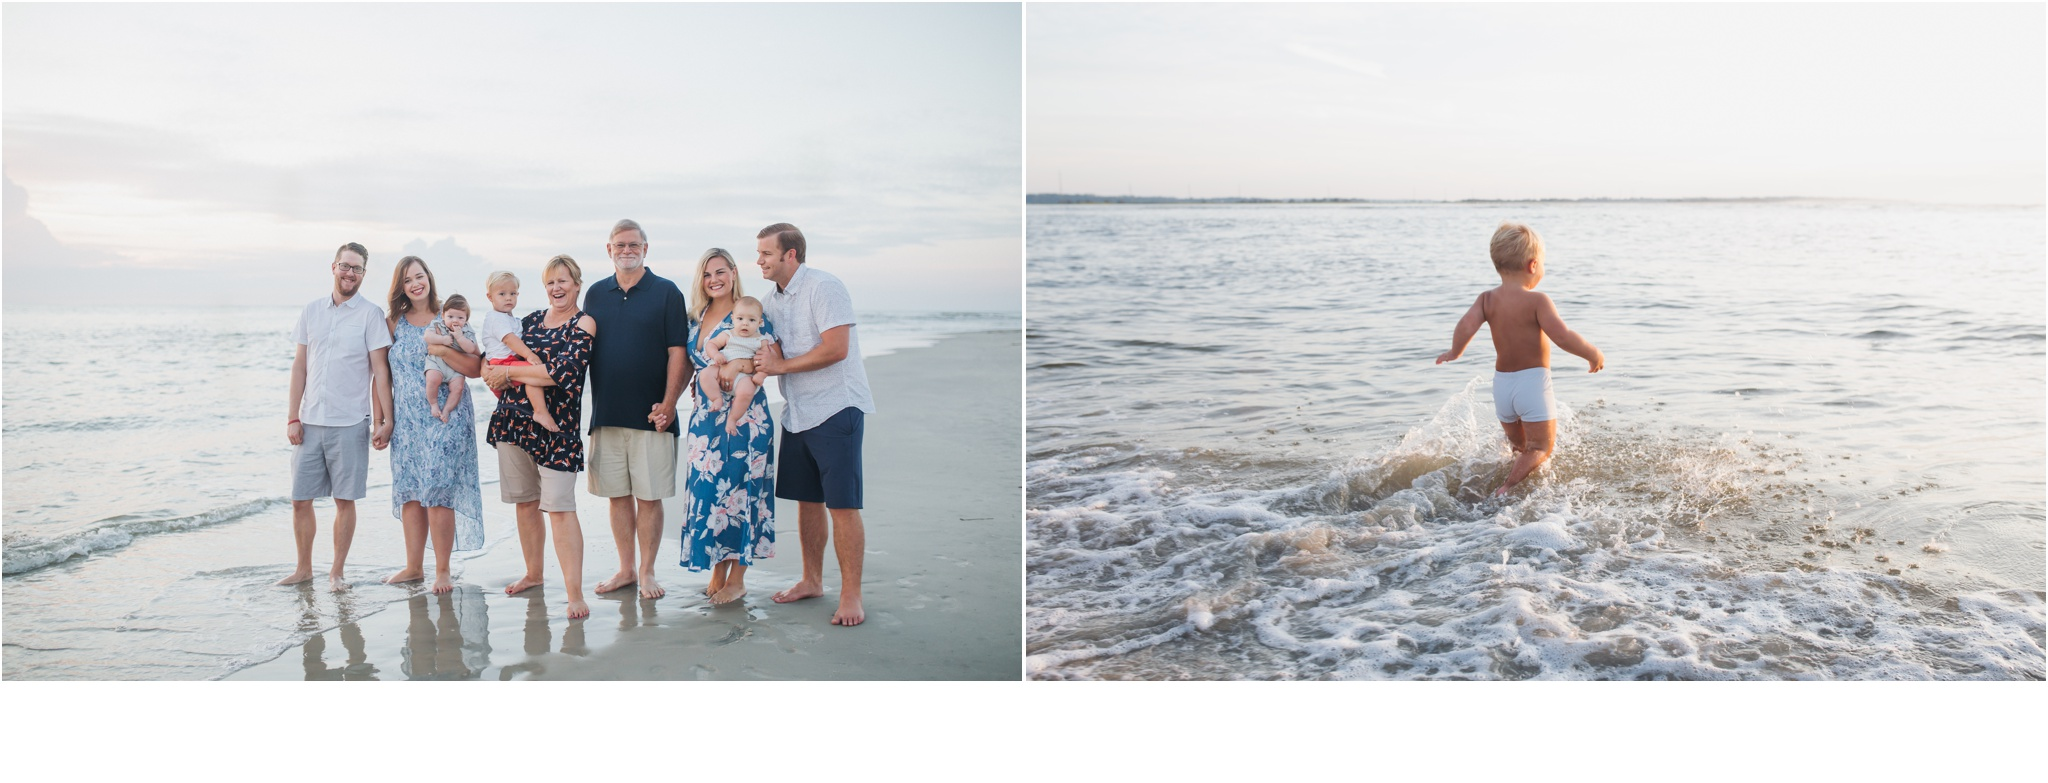 Rainey_Gregg_Photography_St._Simons_Island_Georgia_California_Wedding_Portrait_Photography_1443.jpg